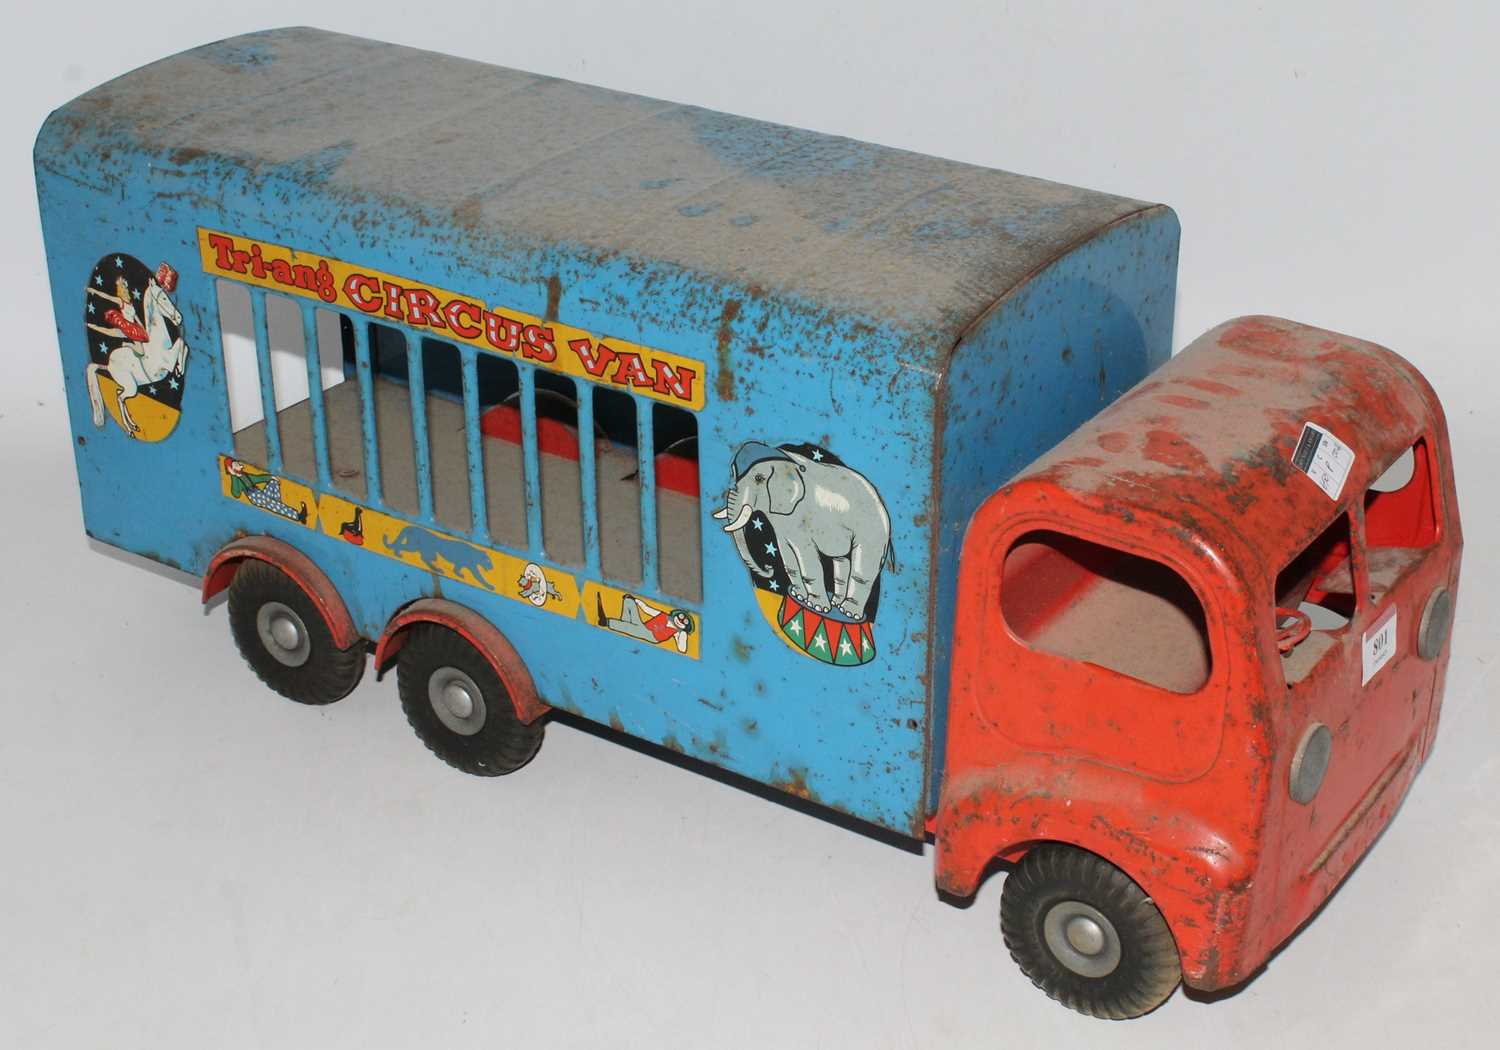 Triang large Circus Van, in blue and red in played with condition, needs cleaning. (F) - Image 2 of 2